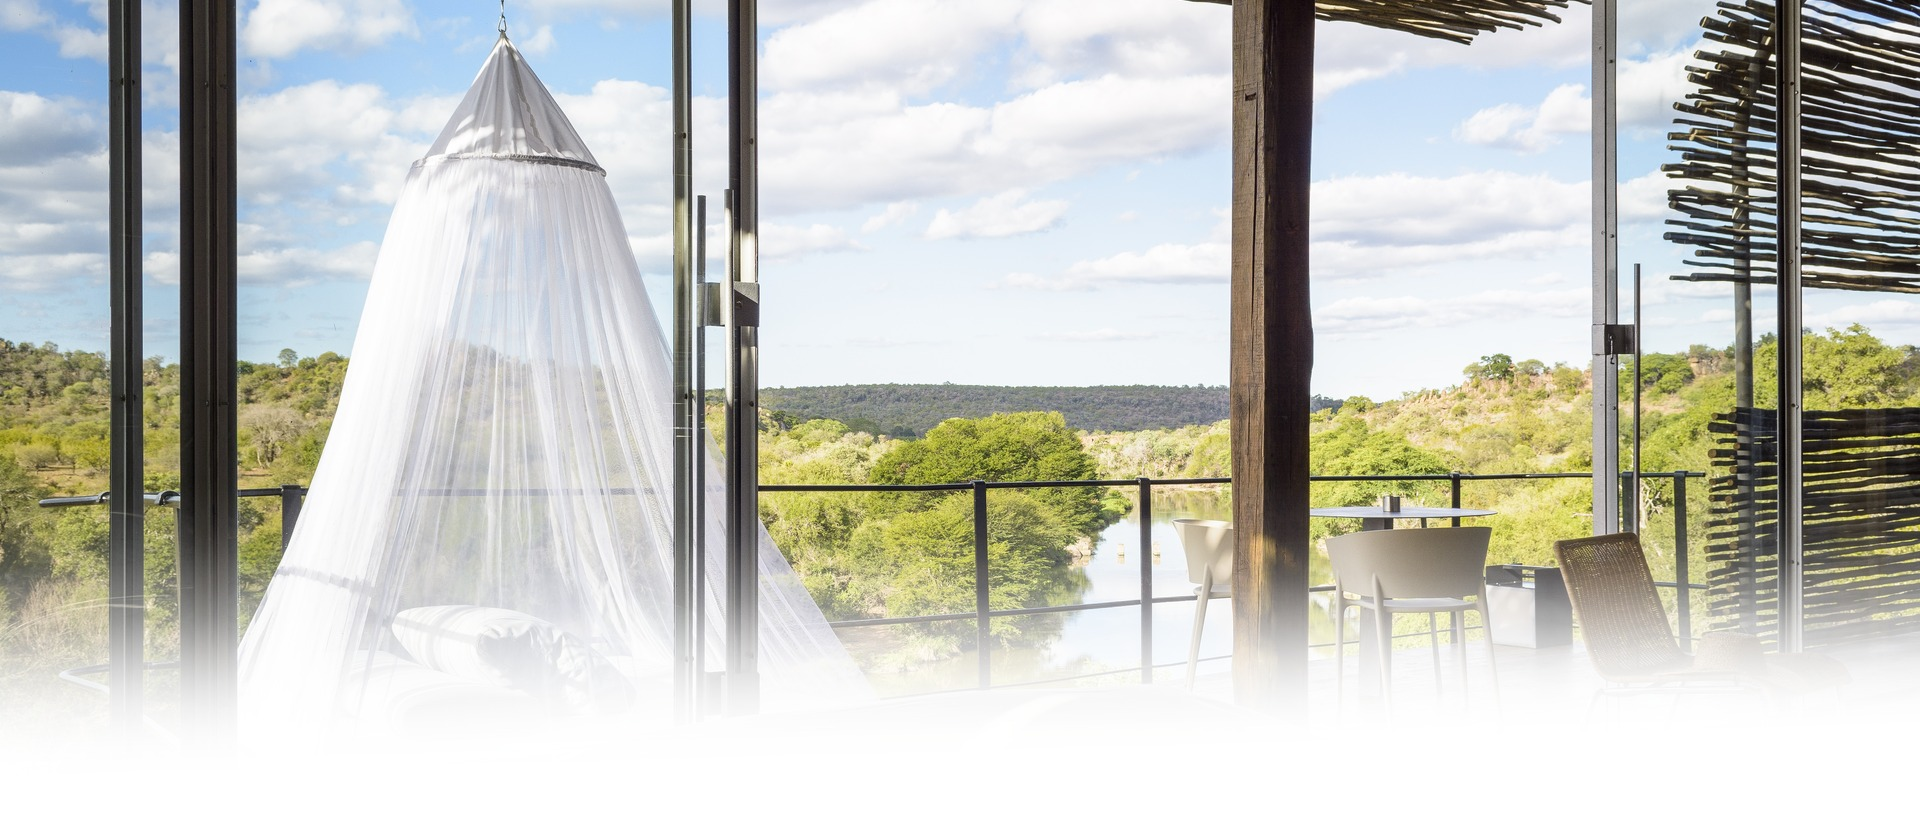 Singita Lebombo Lodge Room and Views